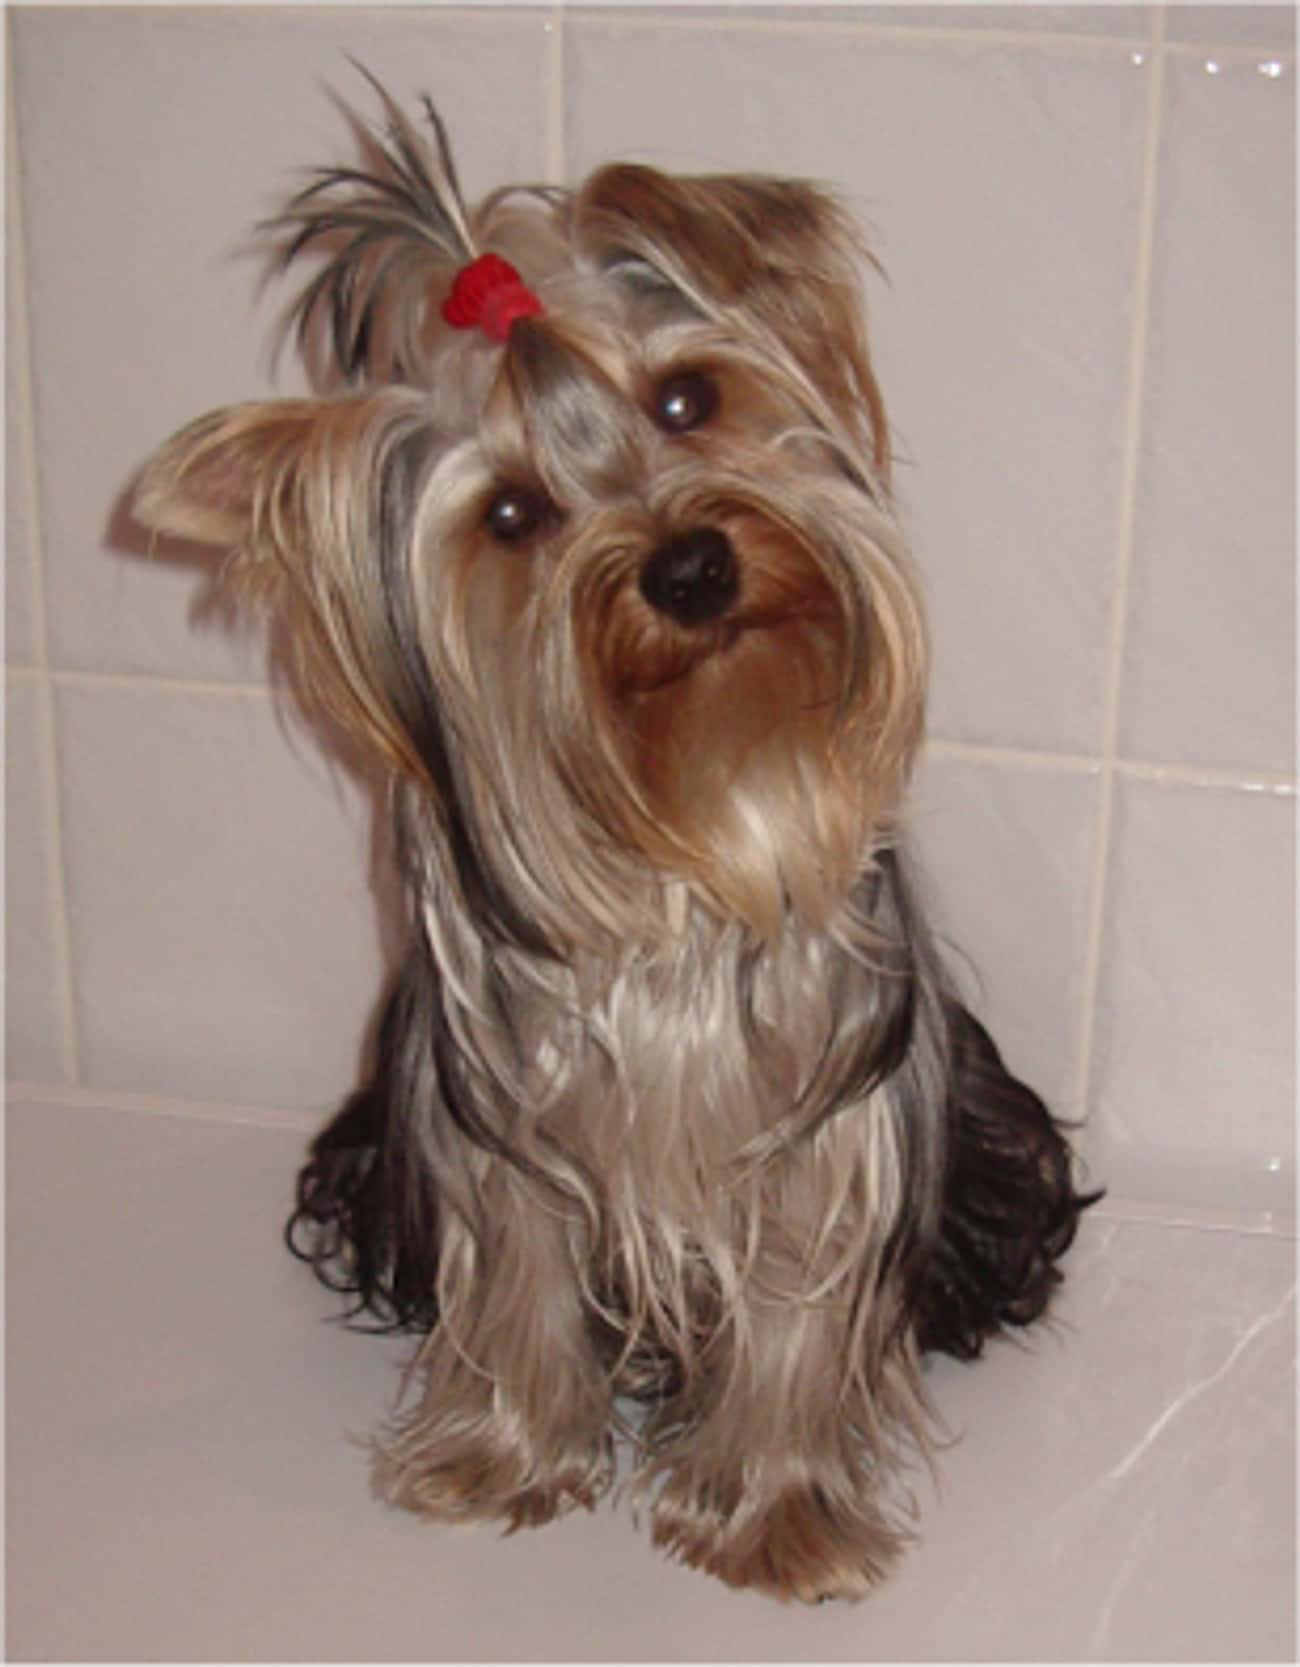 Yorkshire Terrier is listed (or ranked) 4 on the list The Best Apartment Dogs for City Living